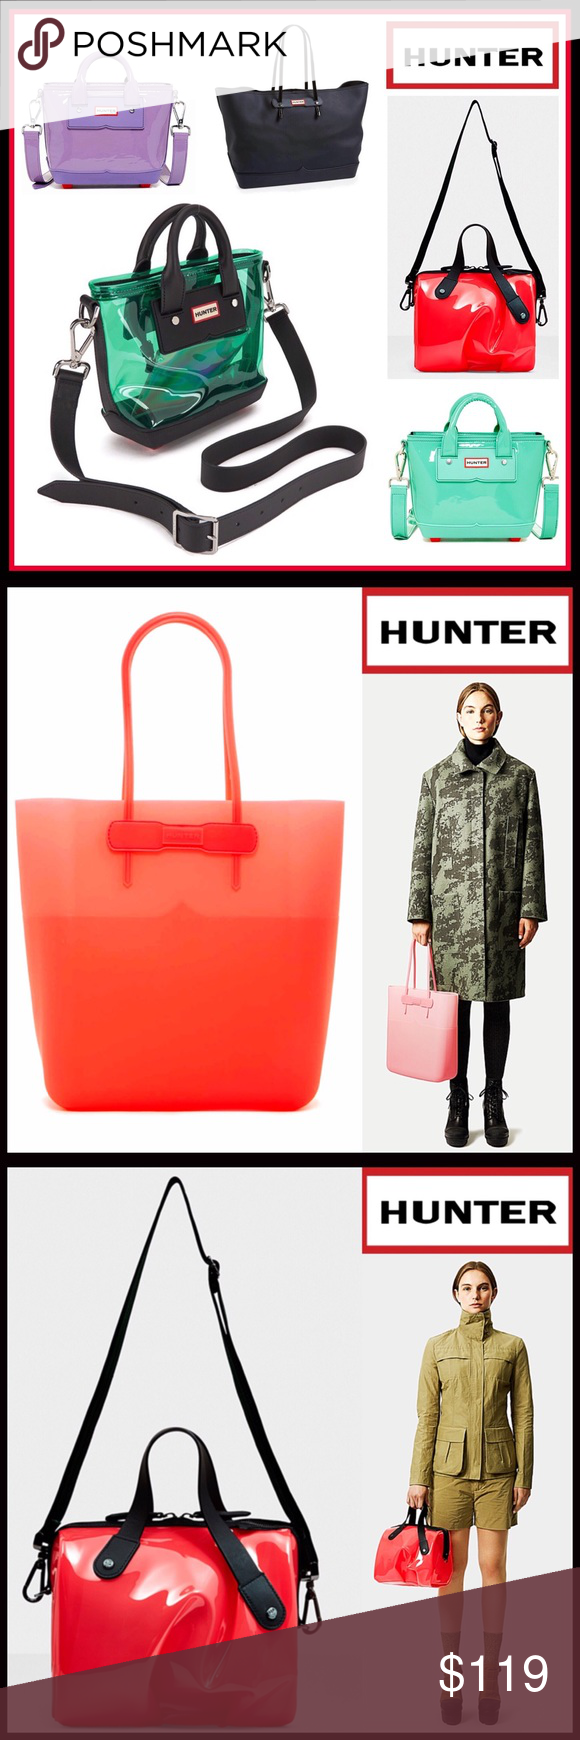 66250ea3f4 HUNTER ORIGINAL AMAZING BAGS AND TOTES HUNTER ORIGINAL BAGS AND TOTES- Take  a look in